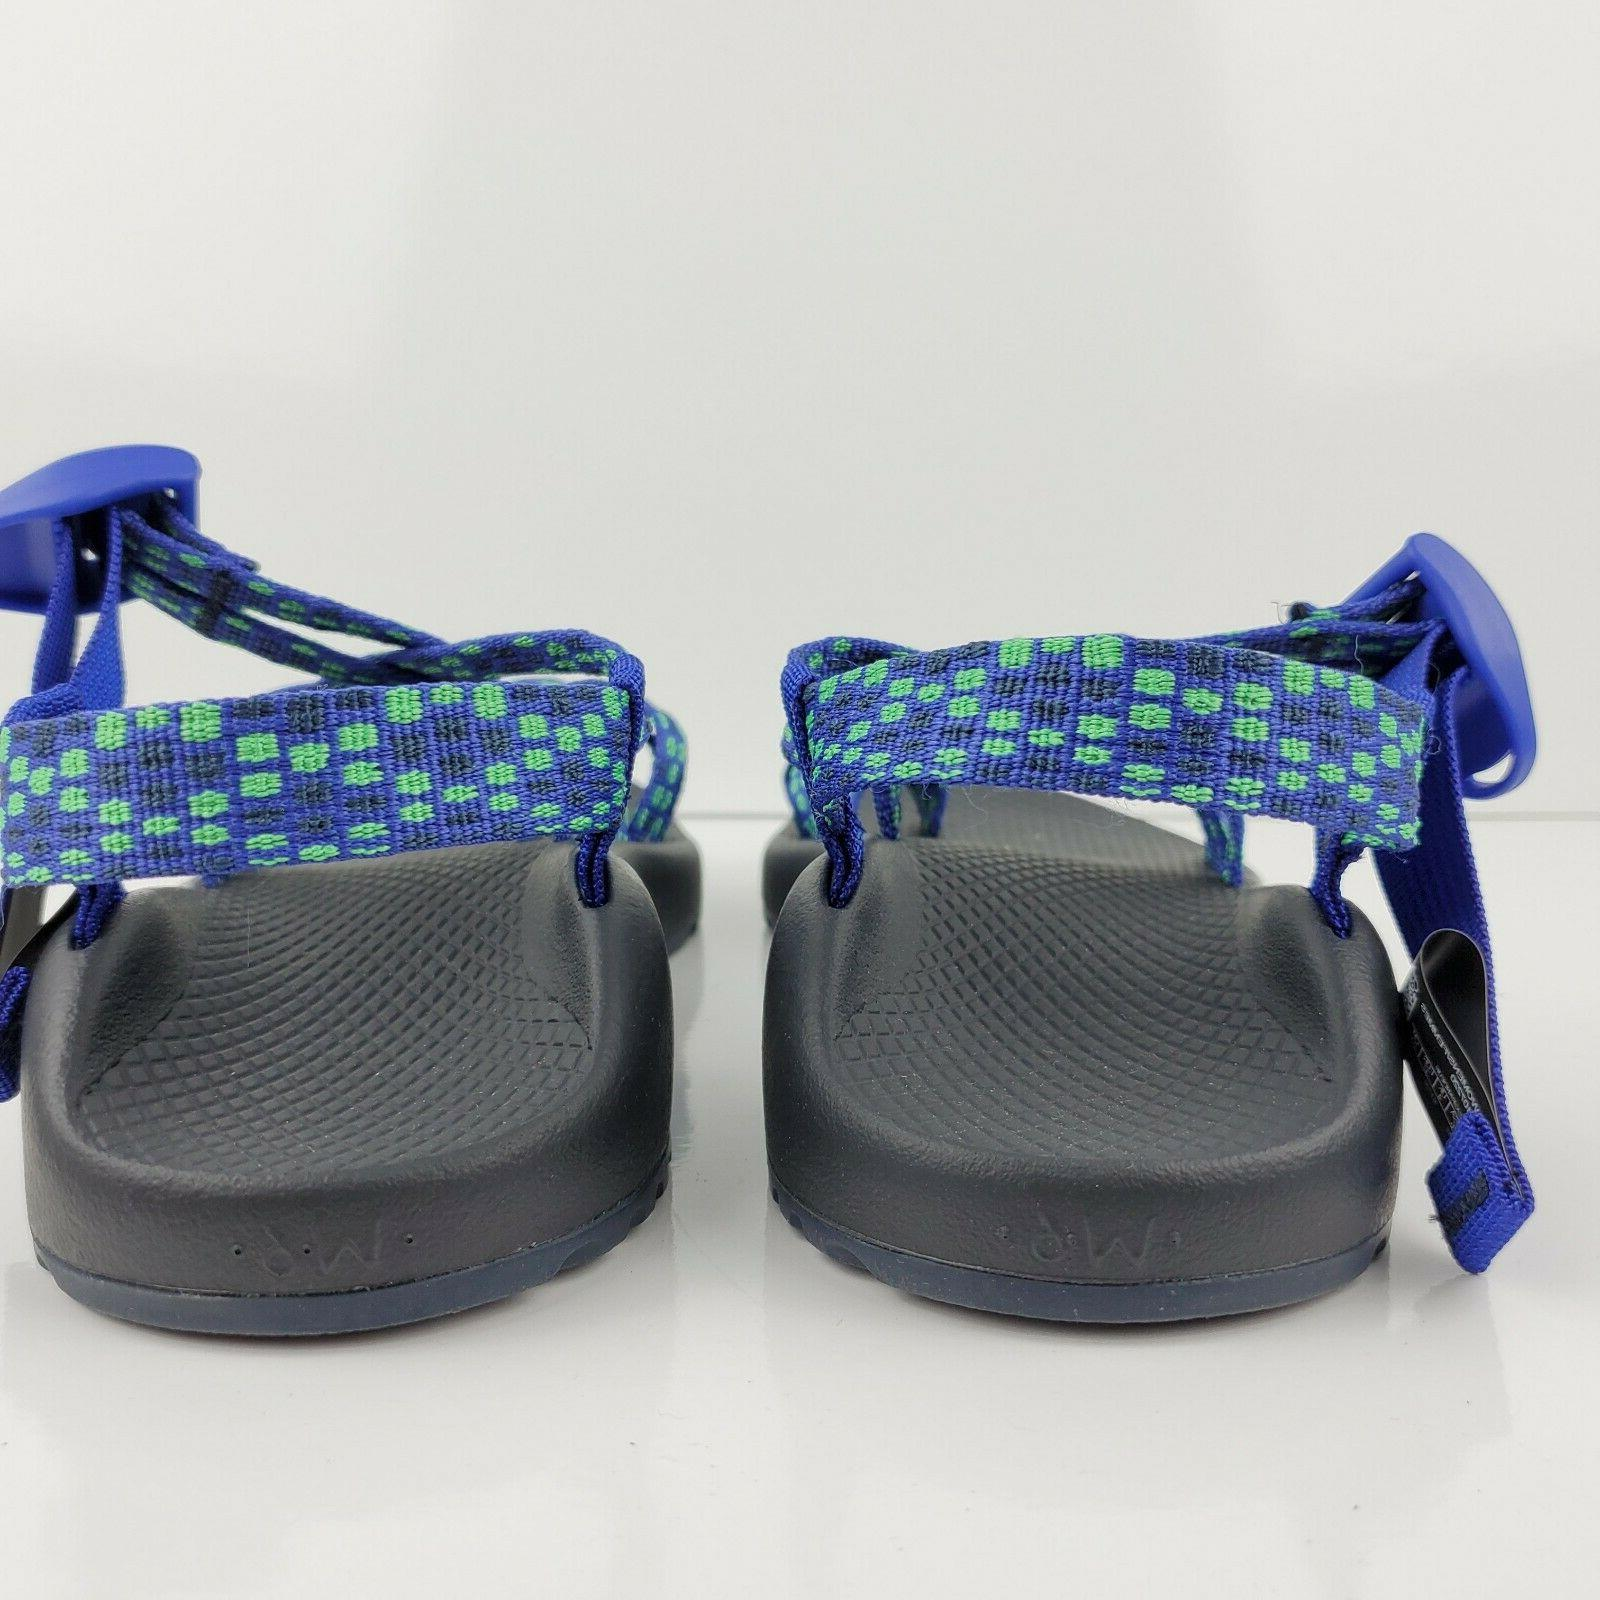 Chaco ZX/2 Sport Women's size 6M Royal Blue Green Hiking